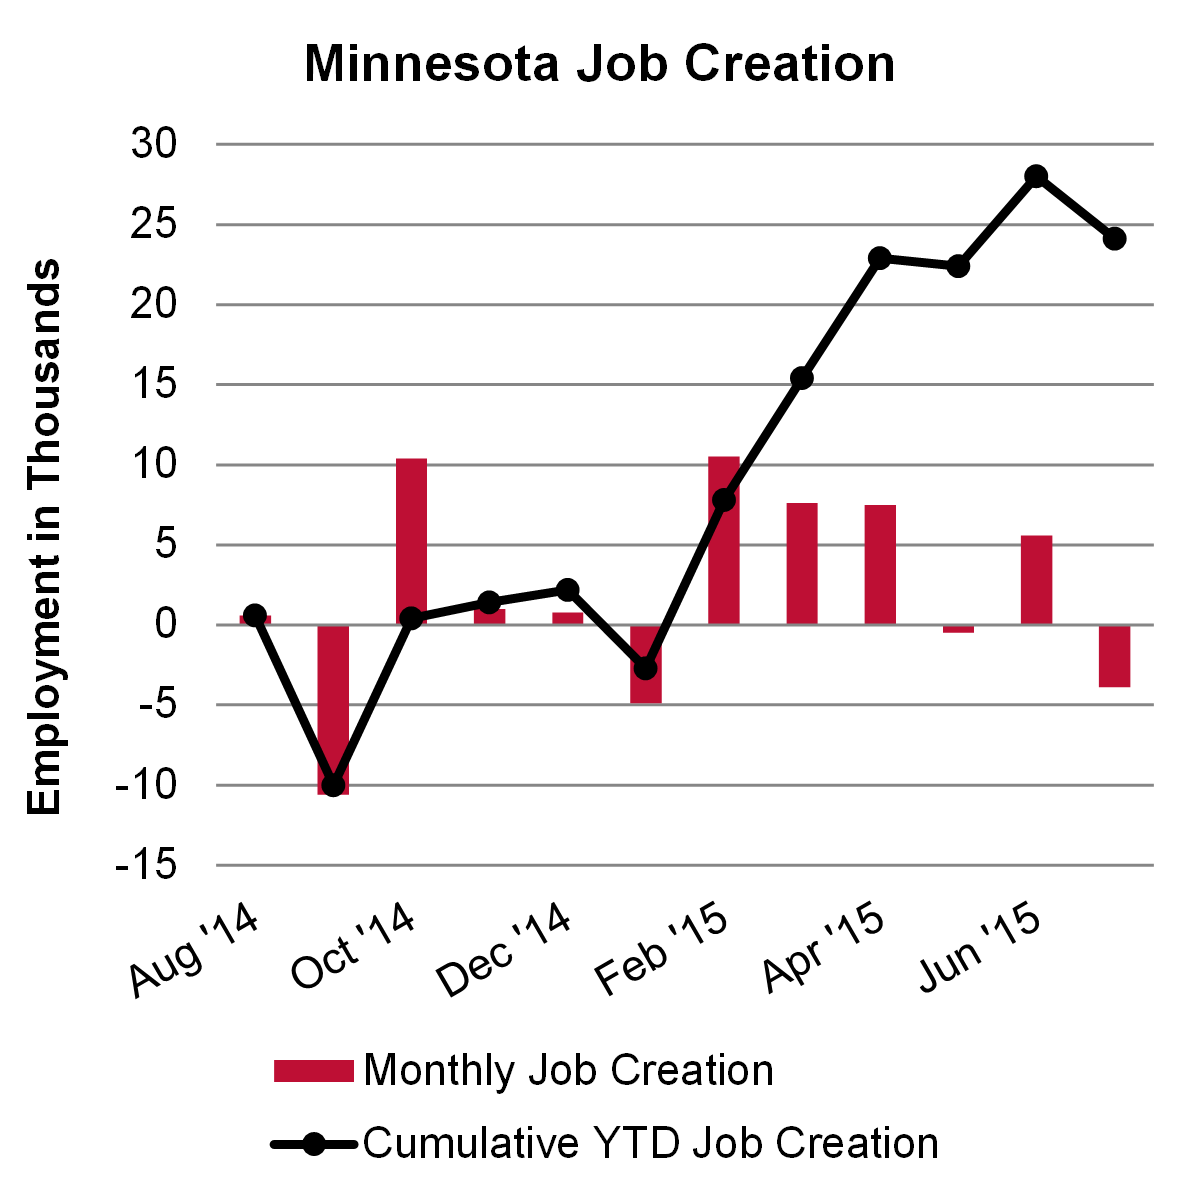 Minnesota Job Creation